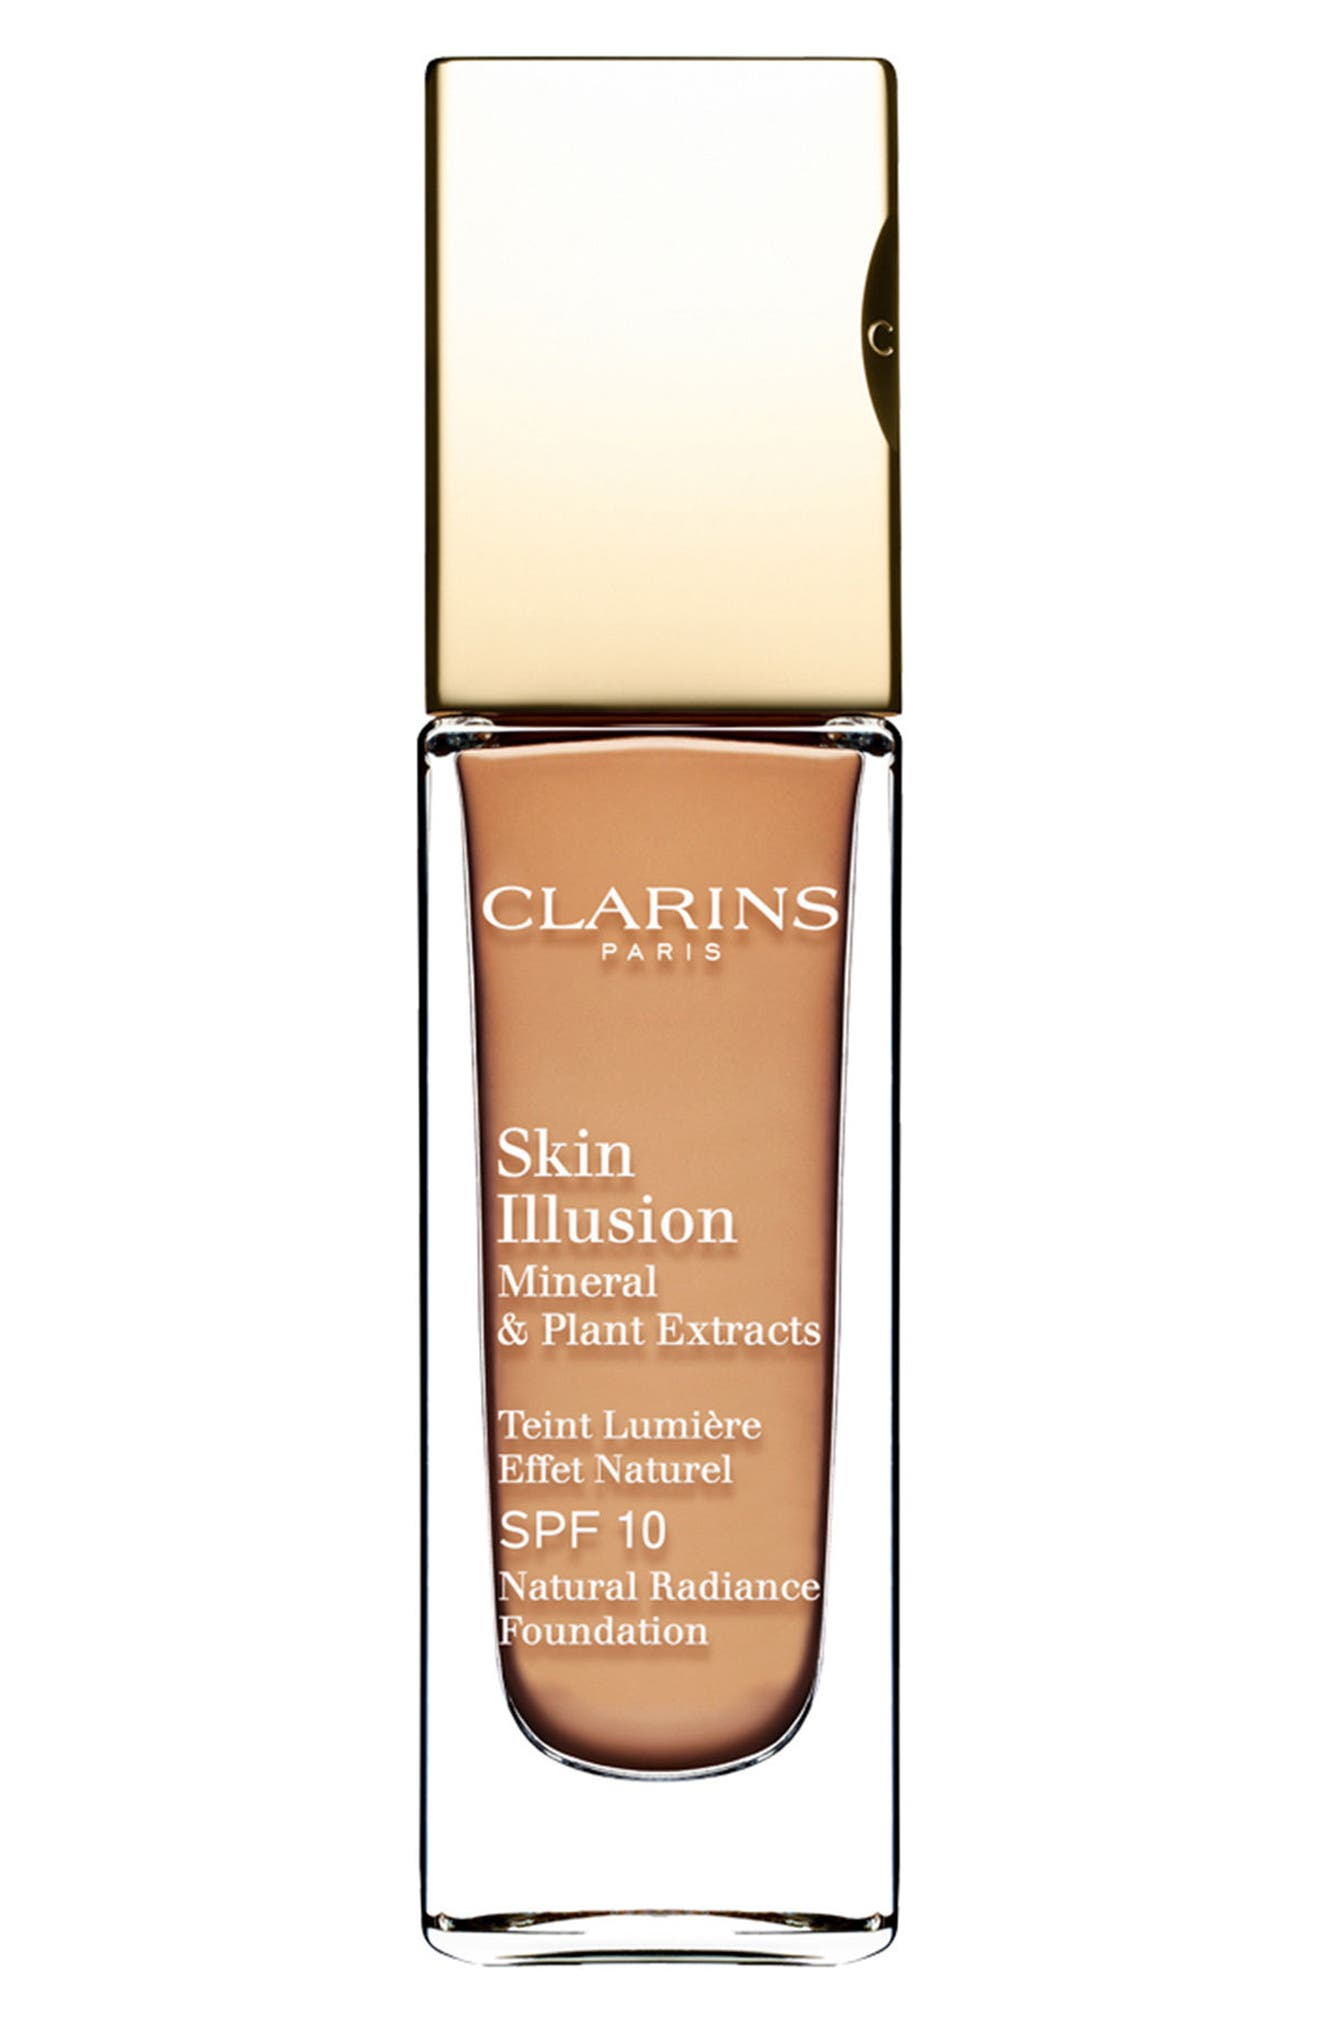 Clarins Skin Illusion Natural Radiance Foundation SPF 10